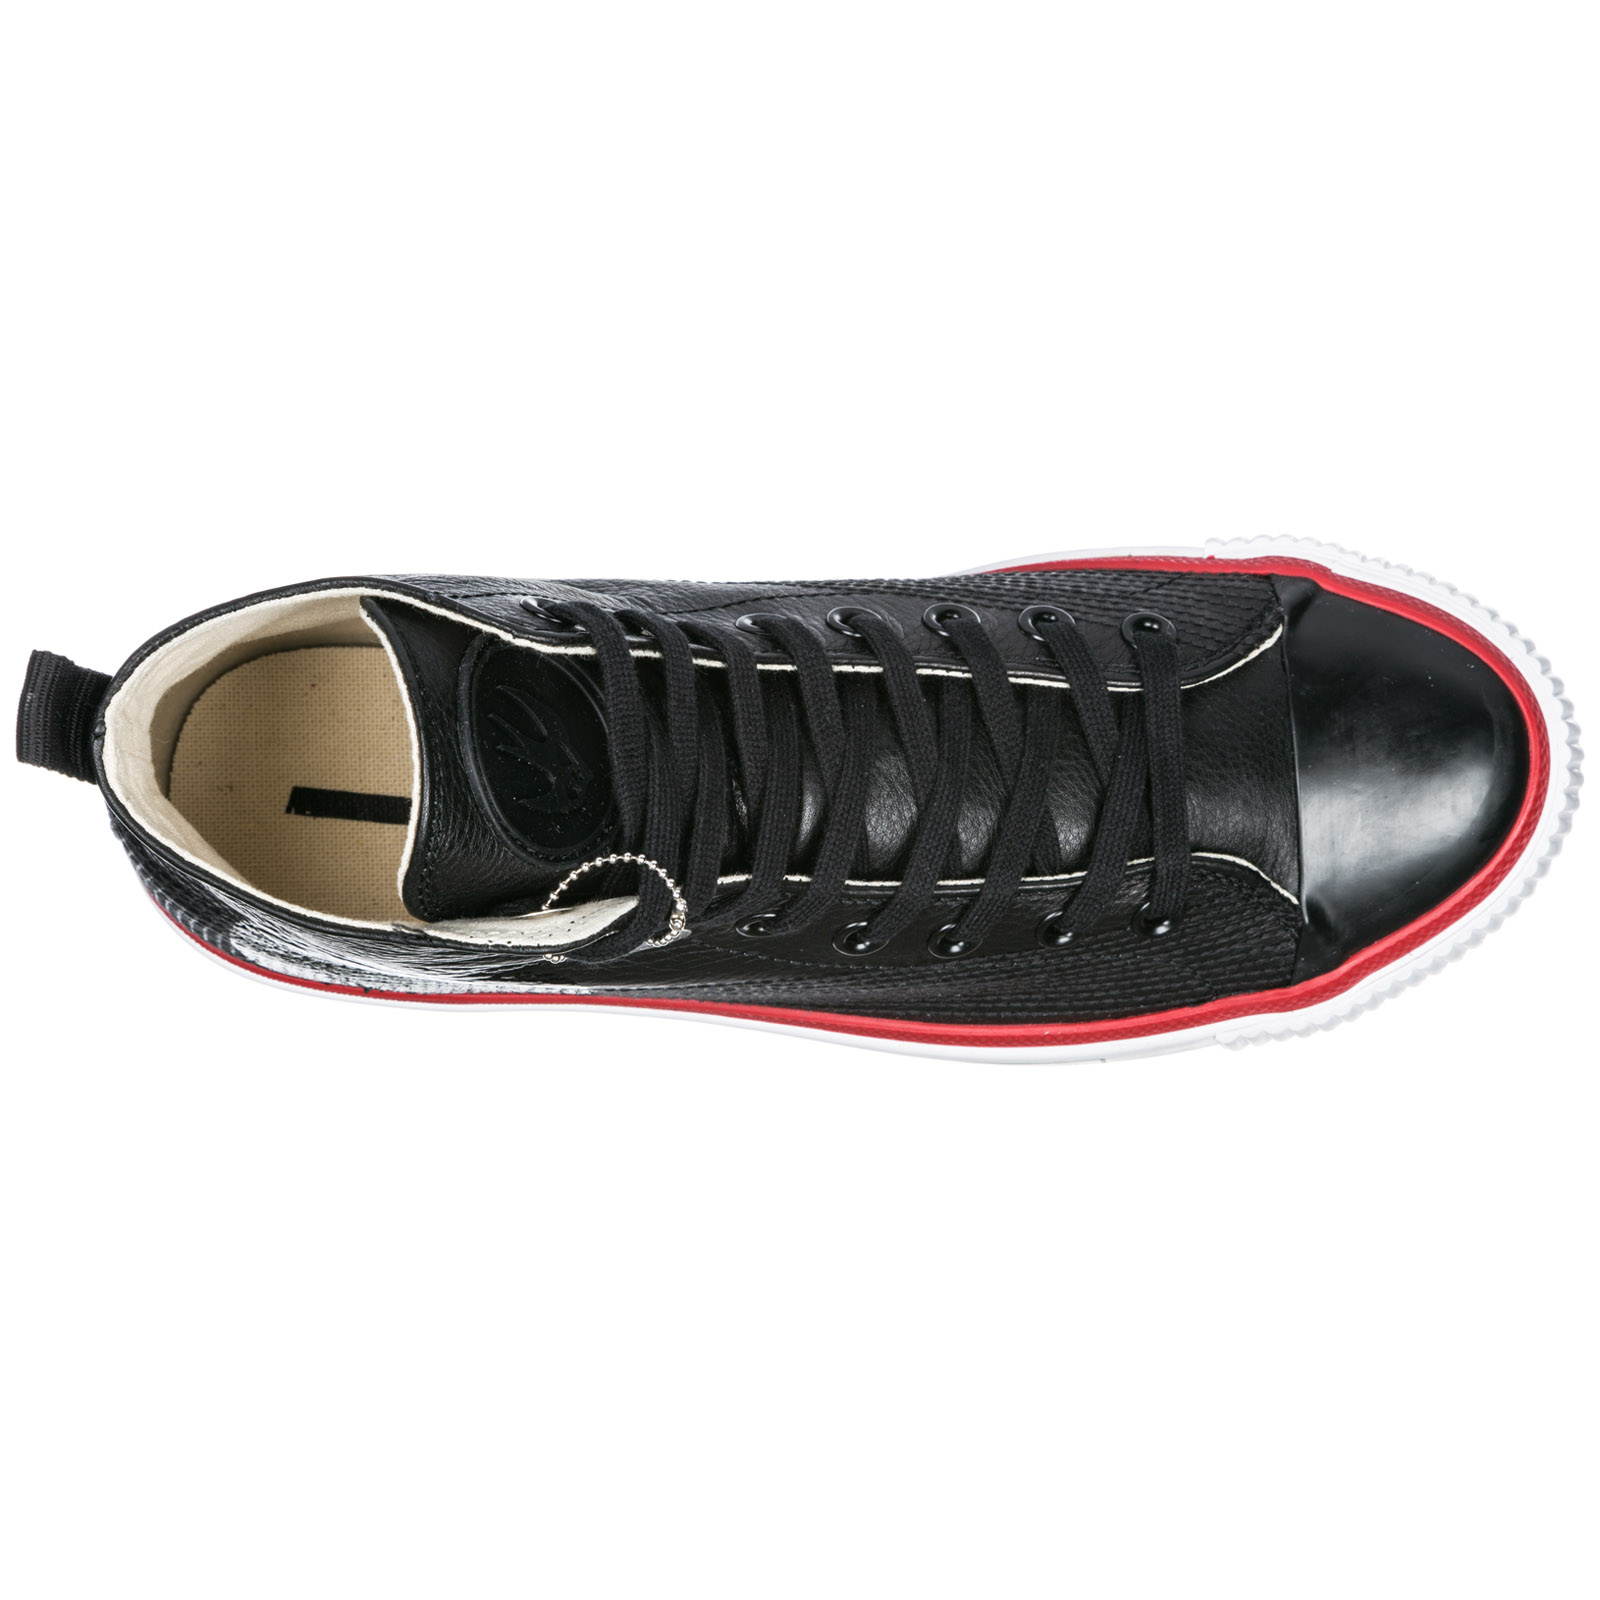 Men's shoes high top leather trainers sneakers plimsoll